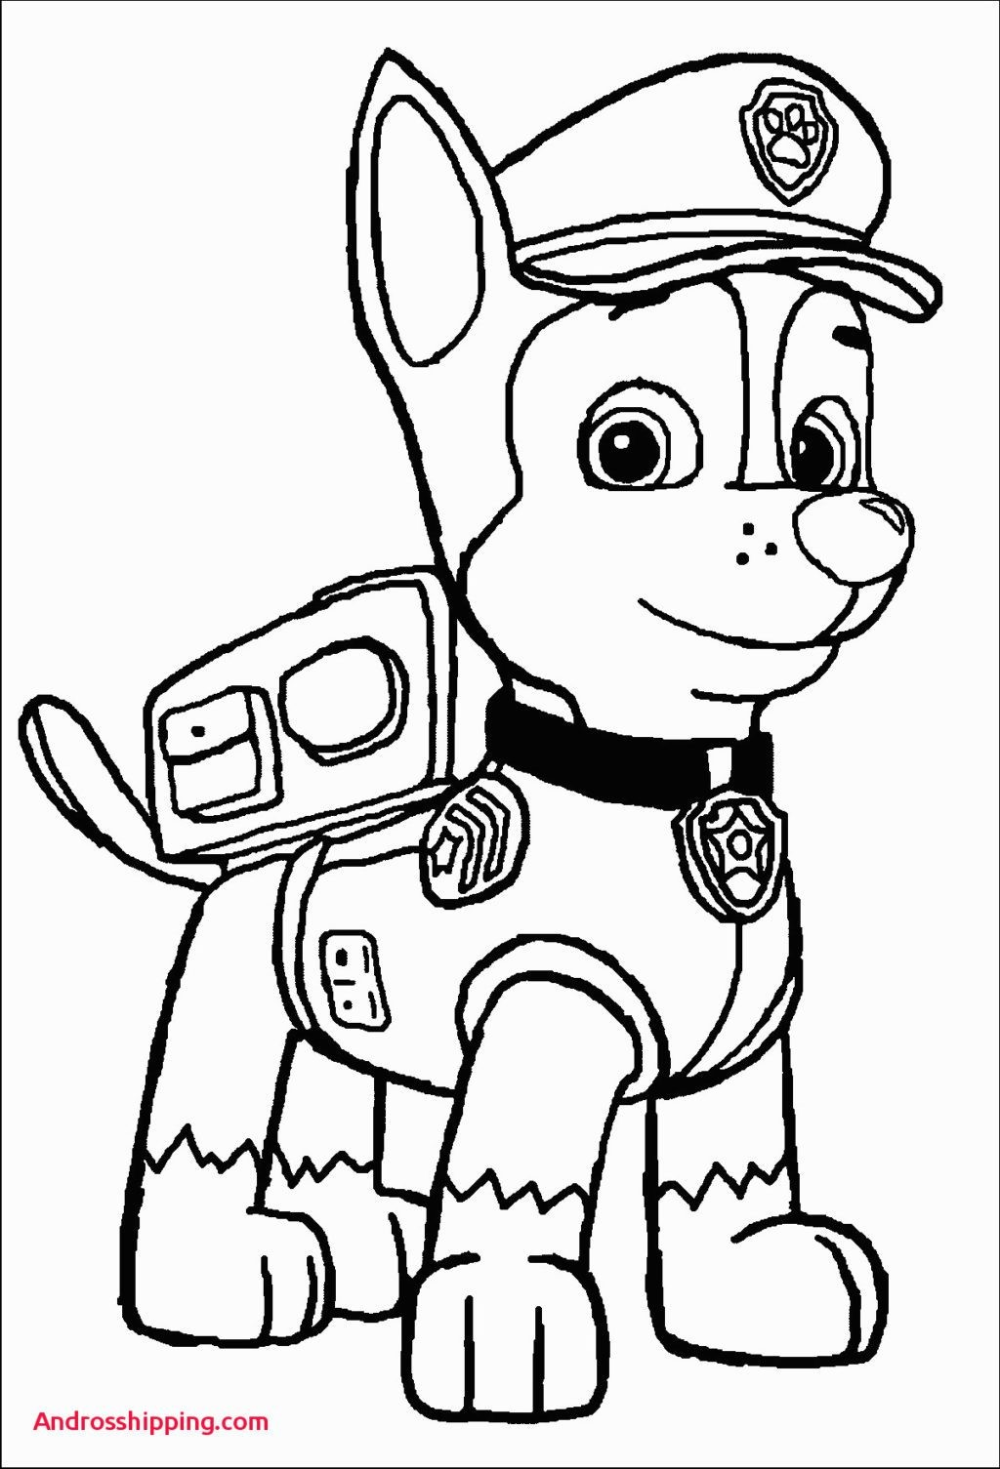 Coloring Sheets For Kids Pages Printable Paw Patrol